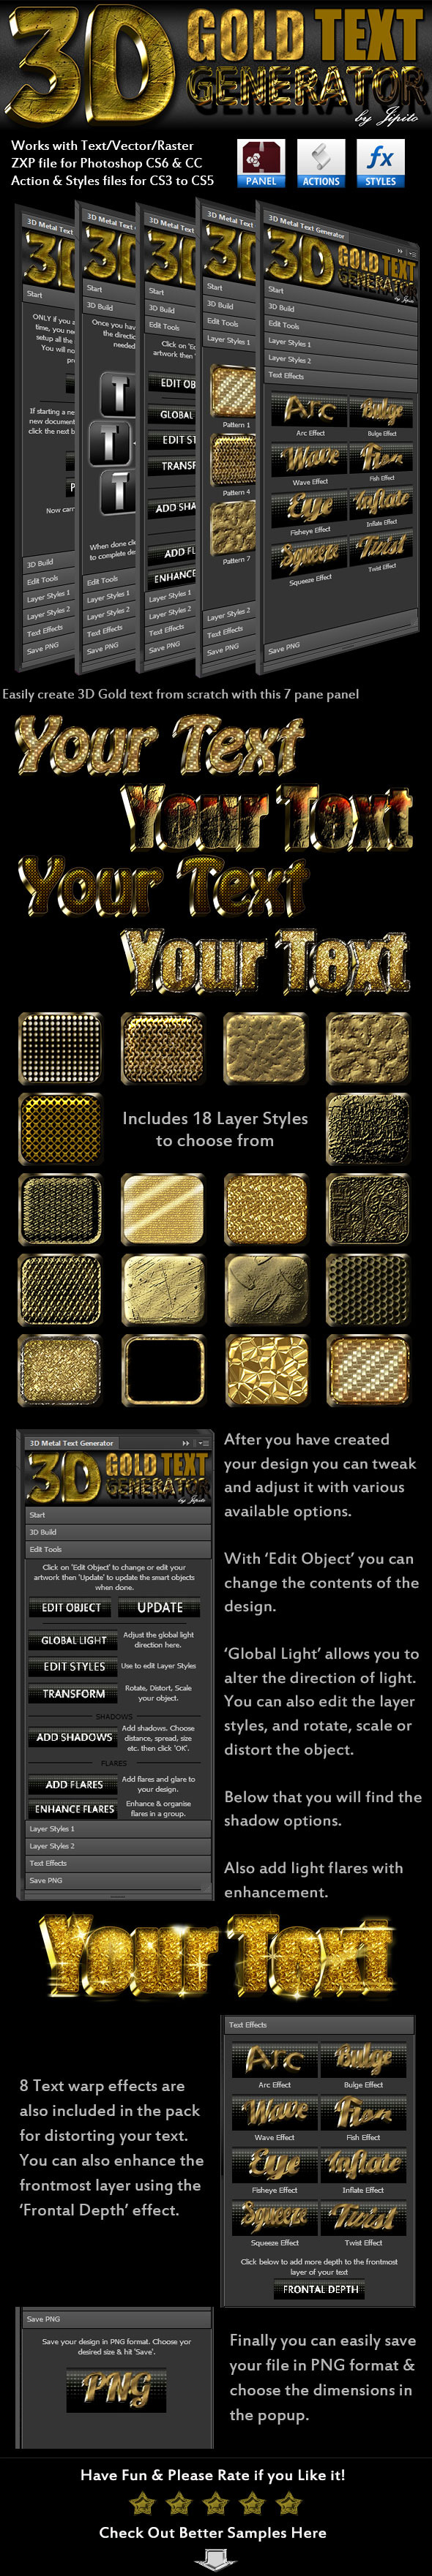 3D Gold Text Generator Panel - Text Effects Actions